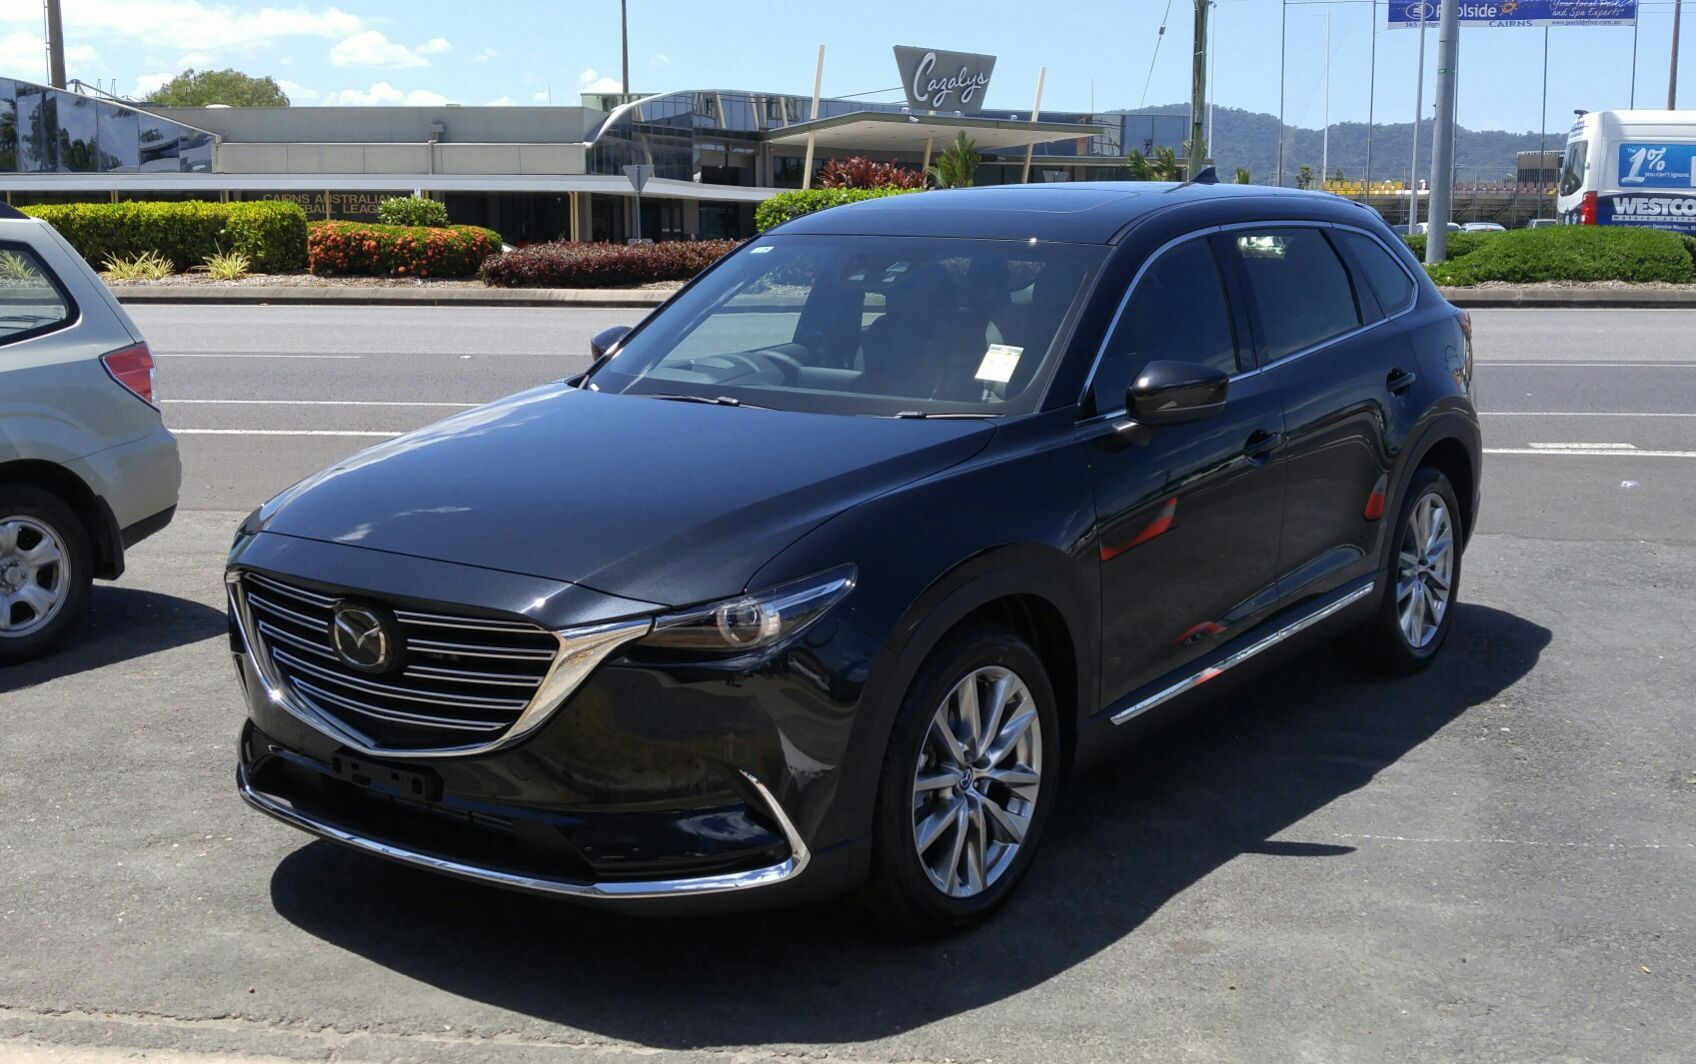 https://upload.wikimedia.org/wikipedia/commons/8/88/MAZDA_CX-9_2019.11.17_01.jpg